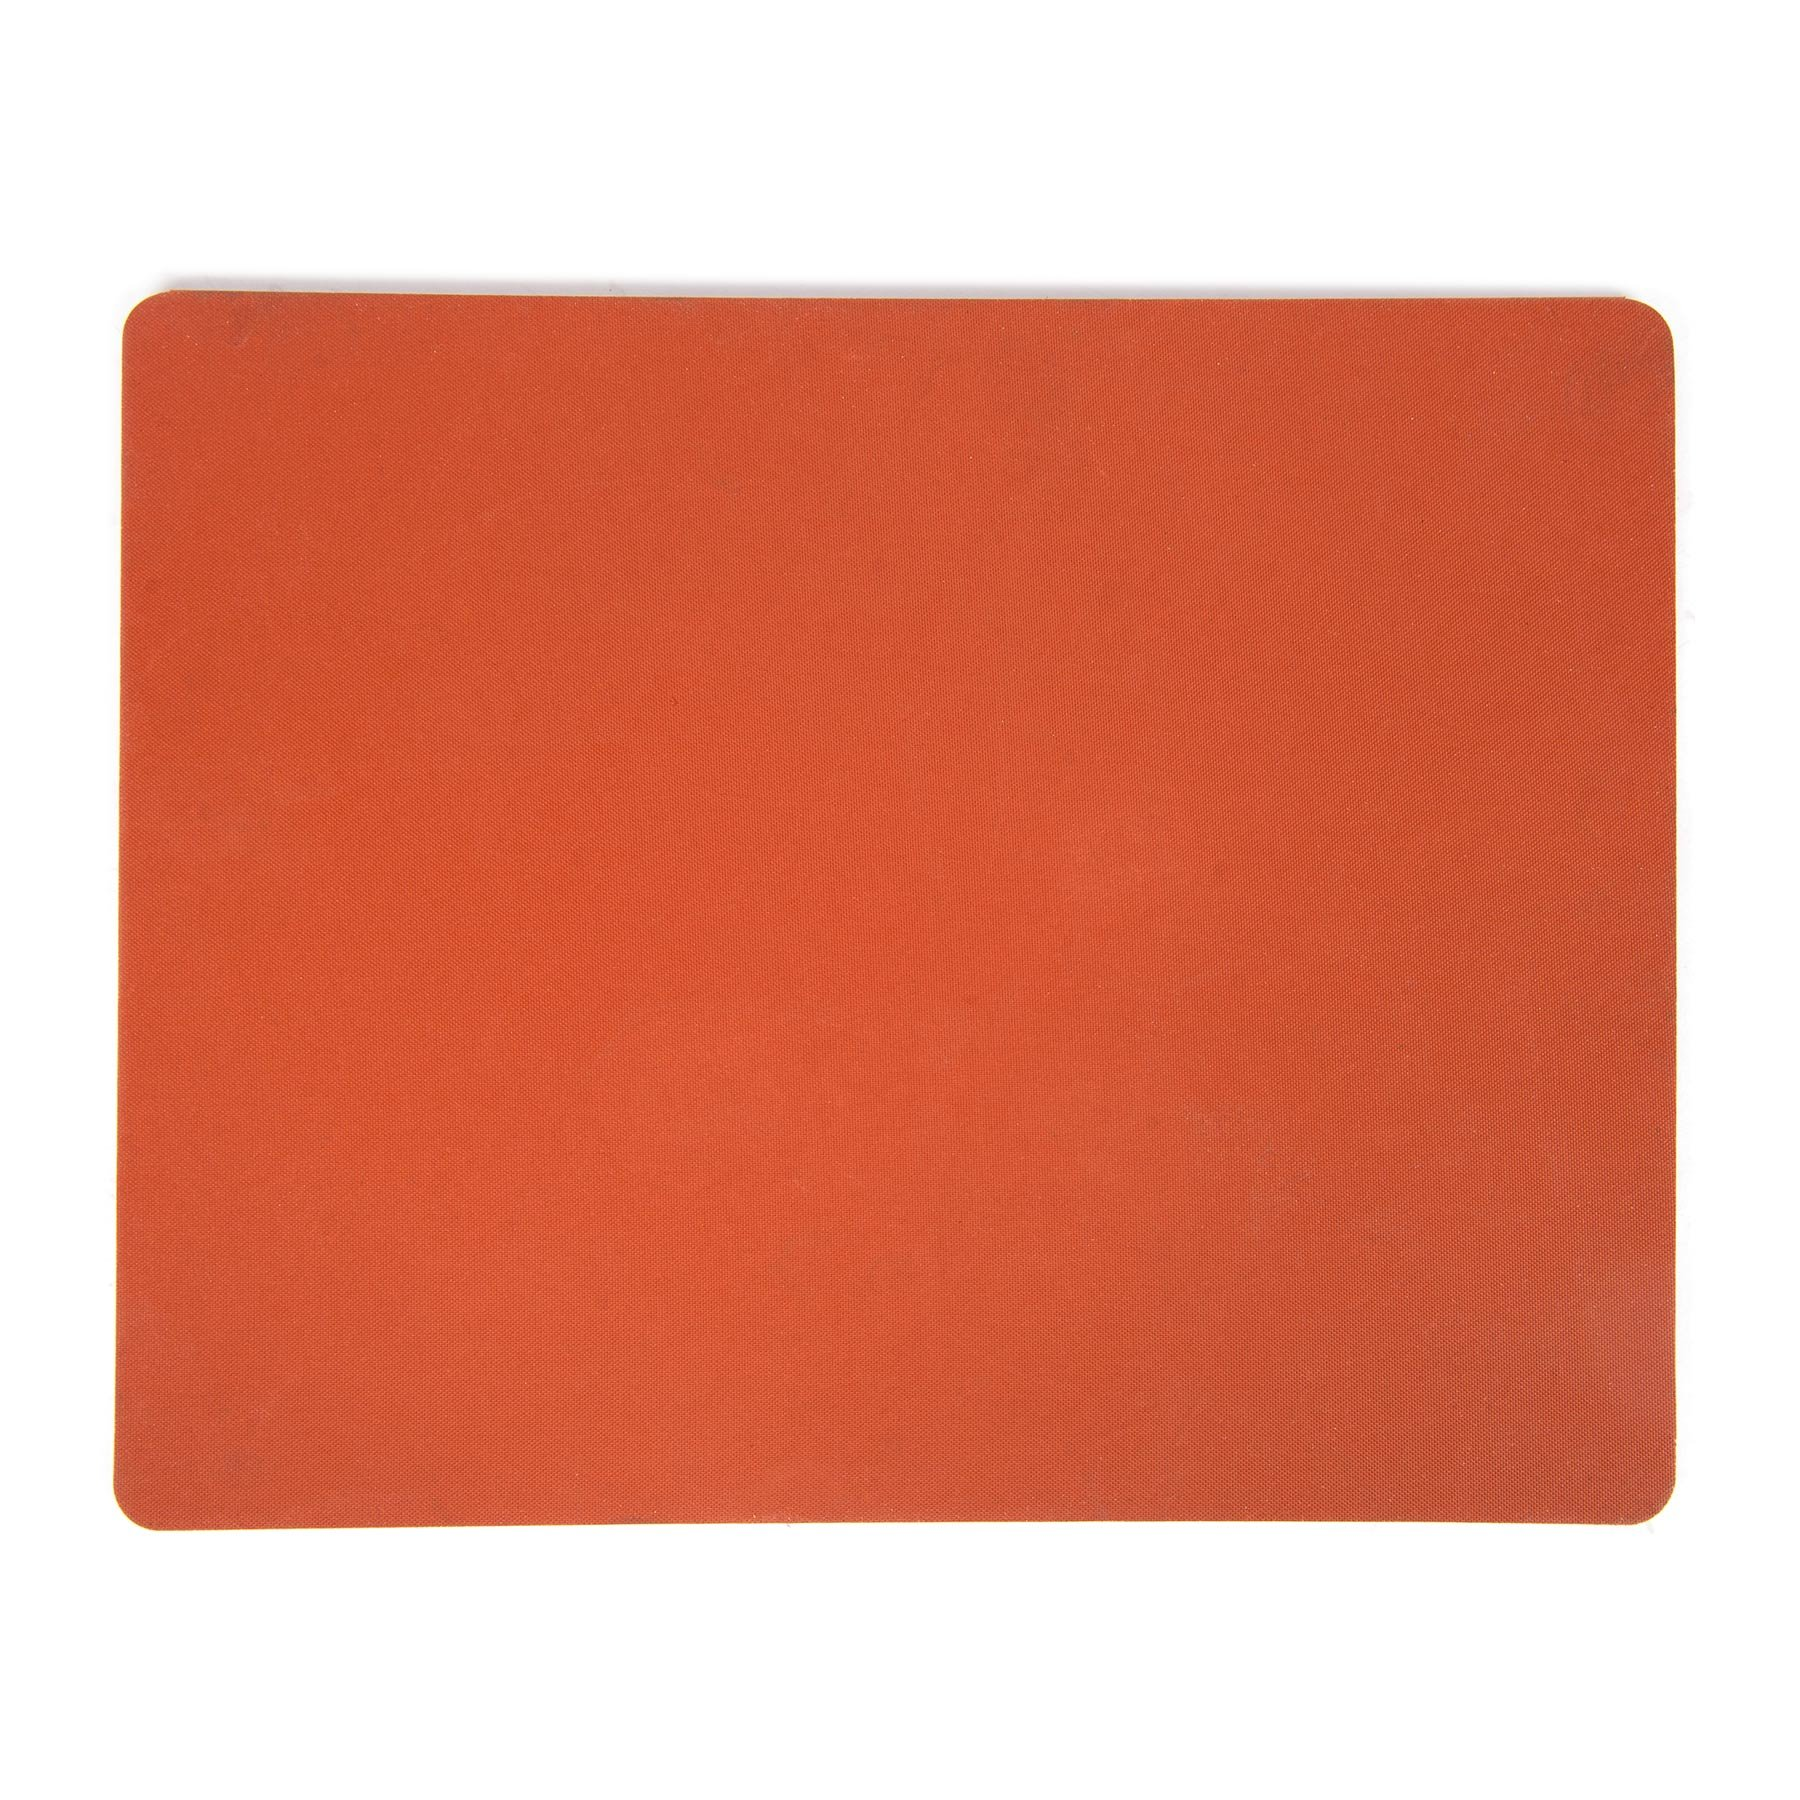 """CO-Z 12"""" ×15"""" Silicone Pad, Flat Heat Press Replacement Heat Resistant Silicone Mat"""